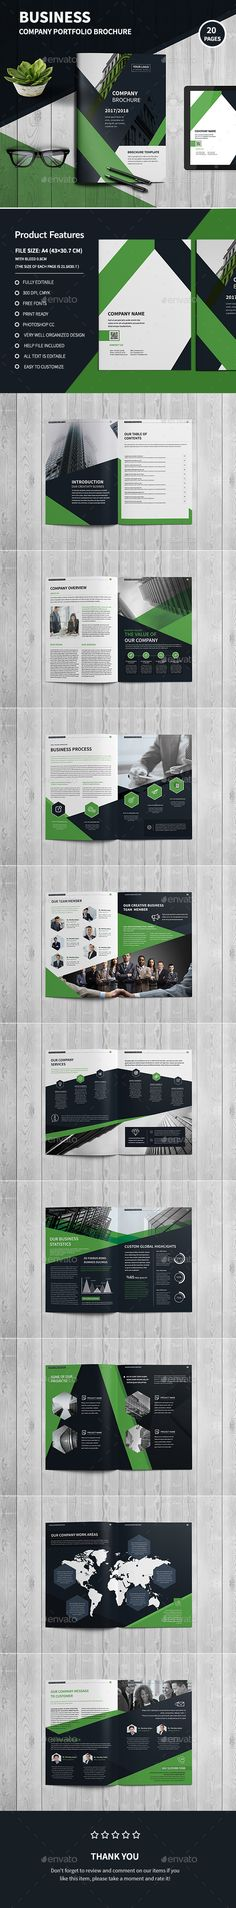 Company Profile 16 Pages Template INDD Company Profile Brochure - company profile templates word